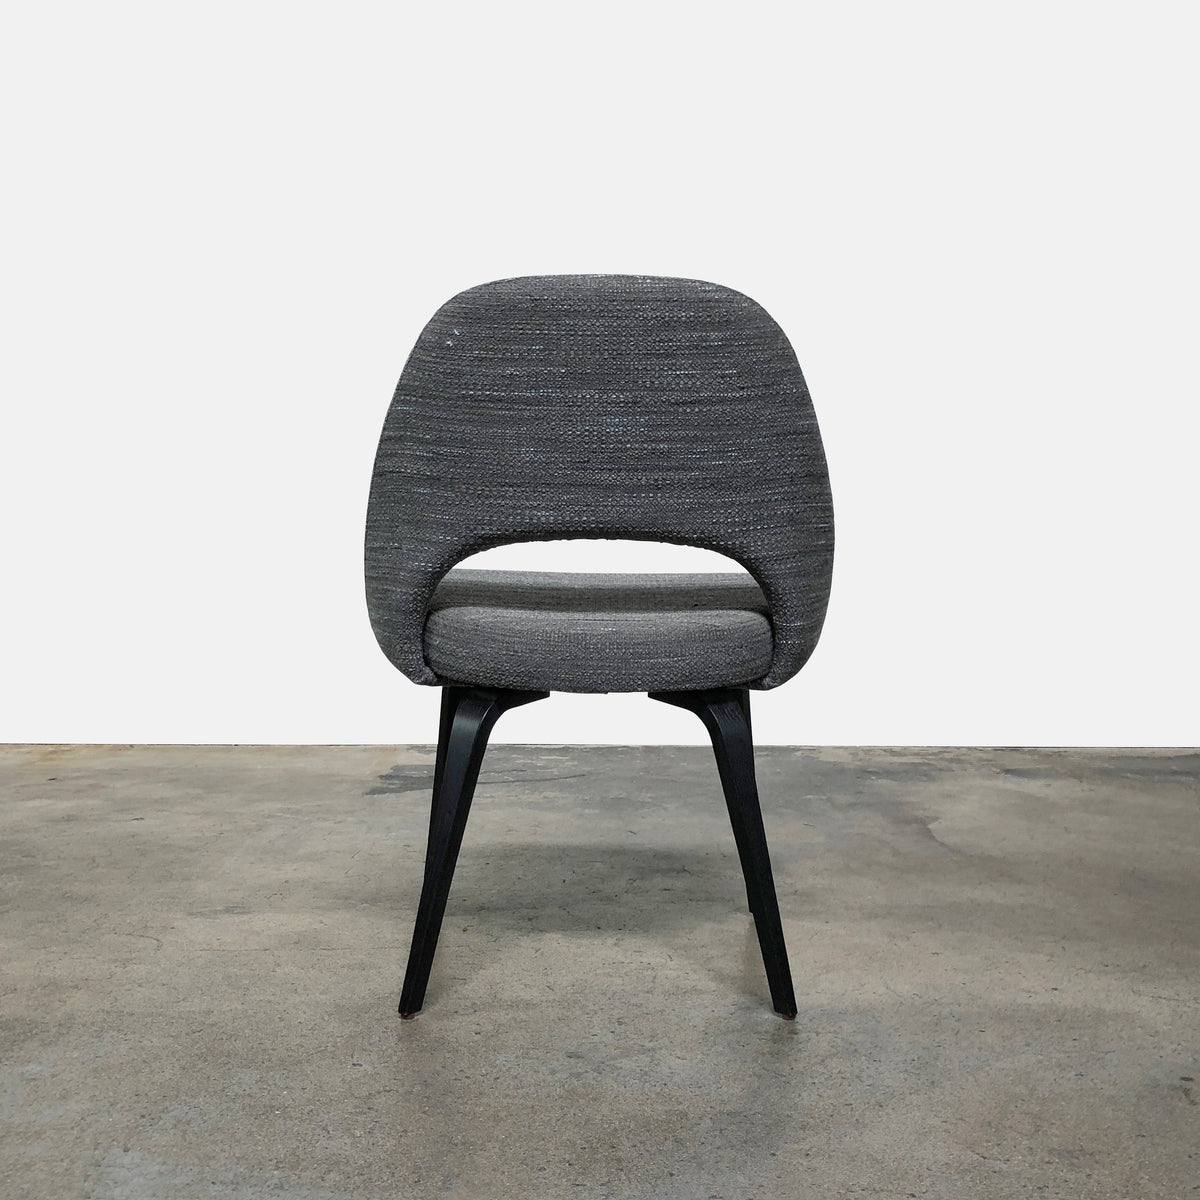 Saarinen Executive Dining Chair (6 in stock)